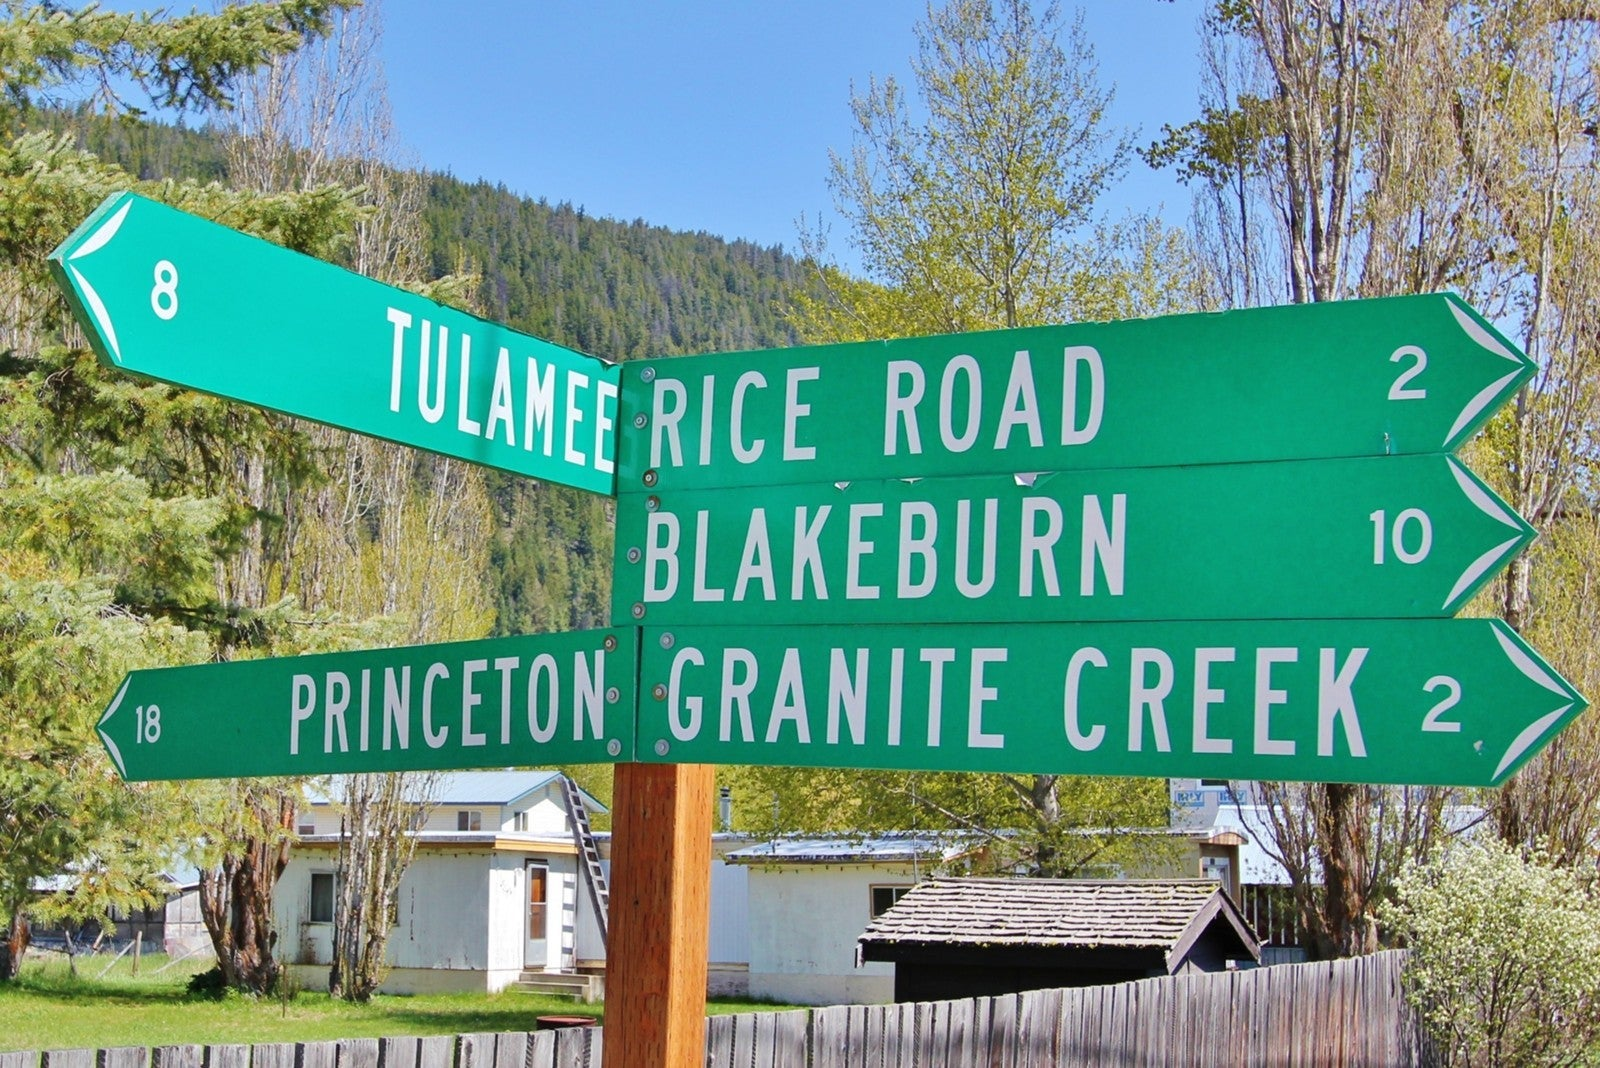 Road signs for Princeton BC and Granite Creek